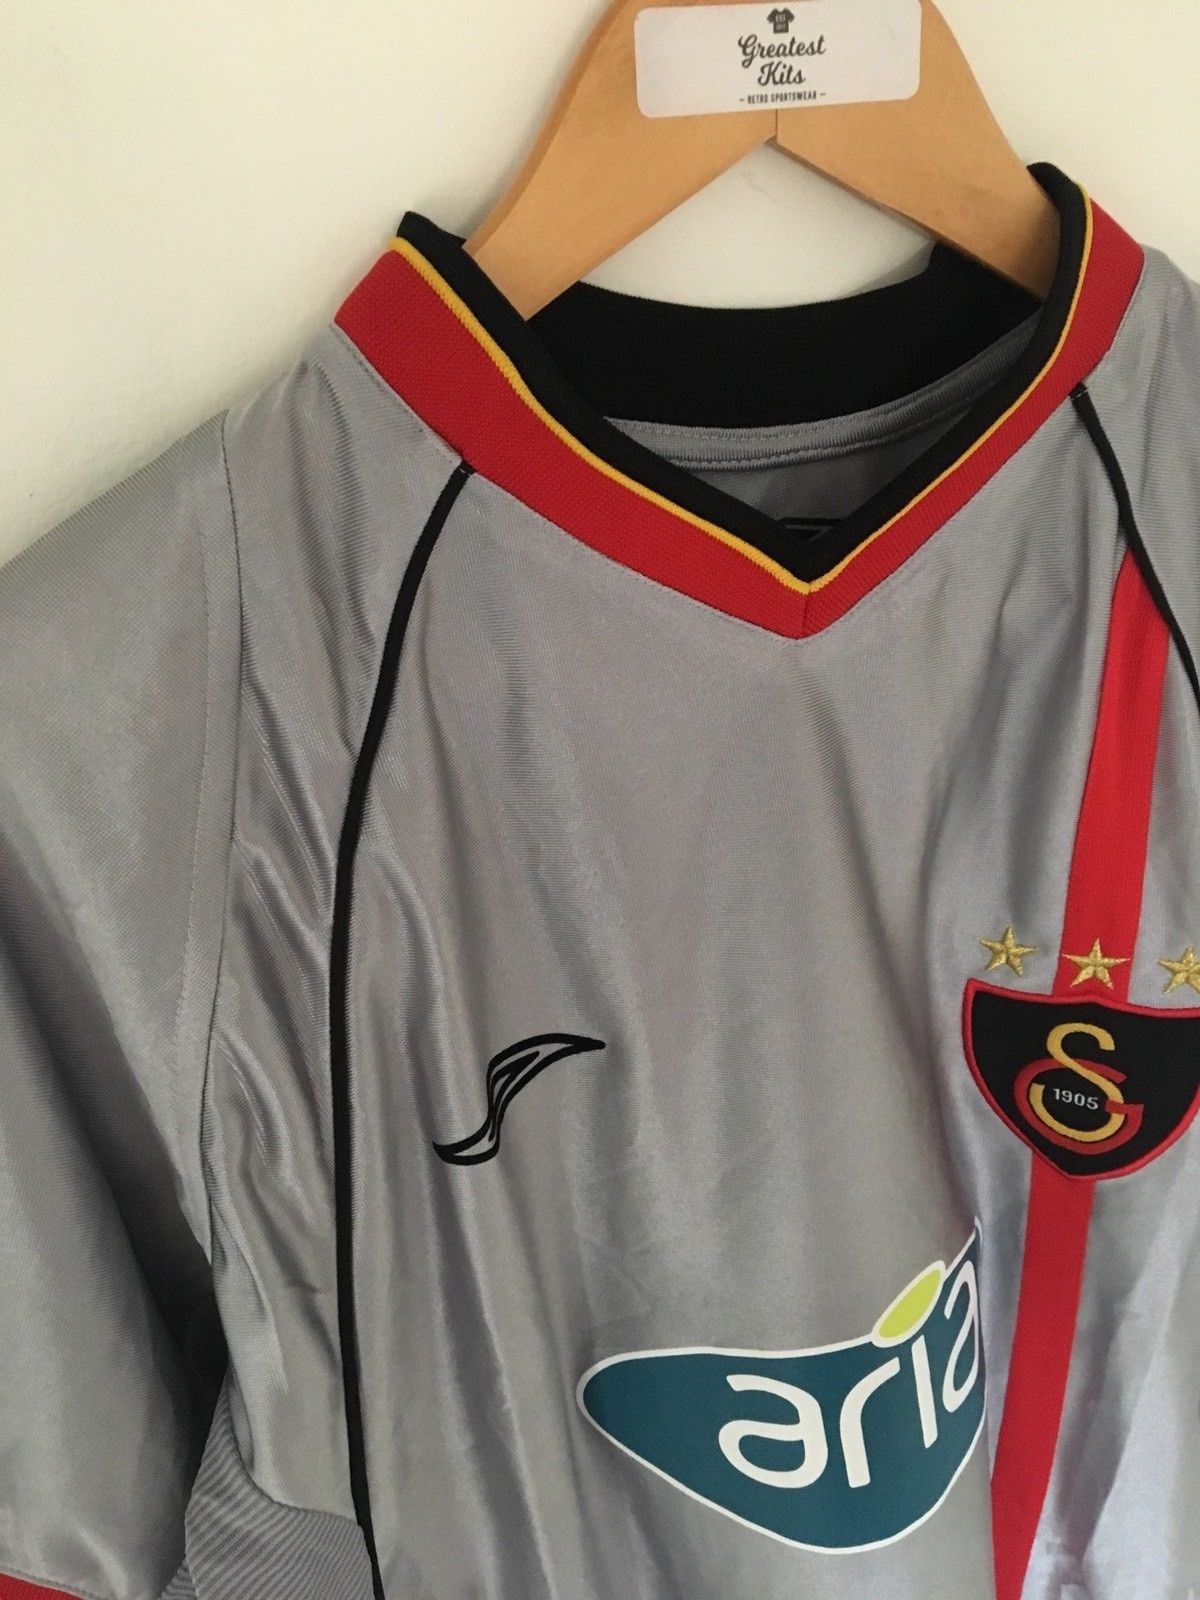 2002/03 Galatasaray Fourth Shirt *w/Tags* (L)